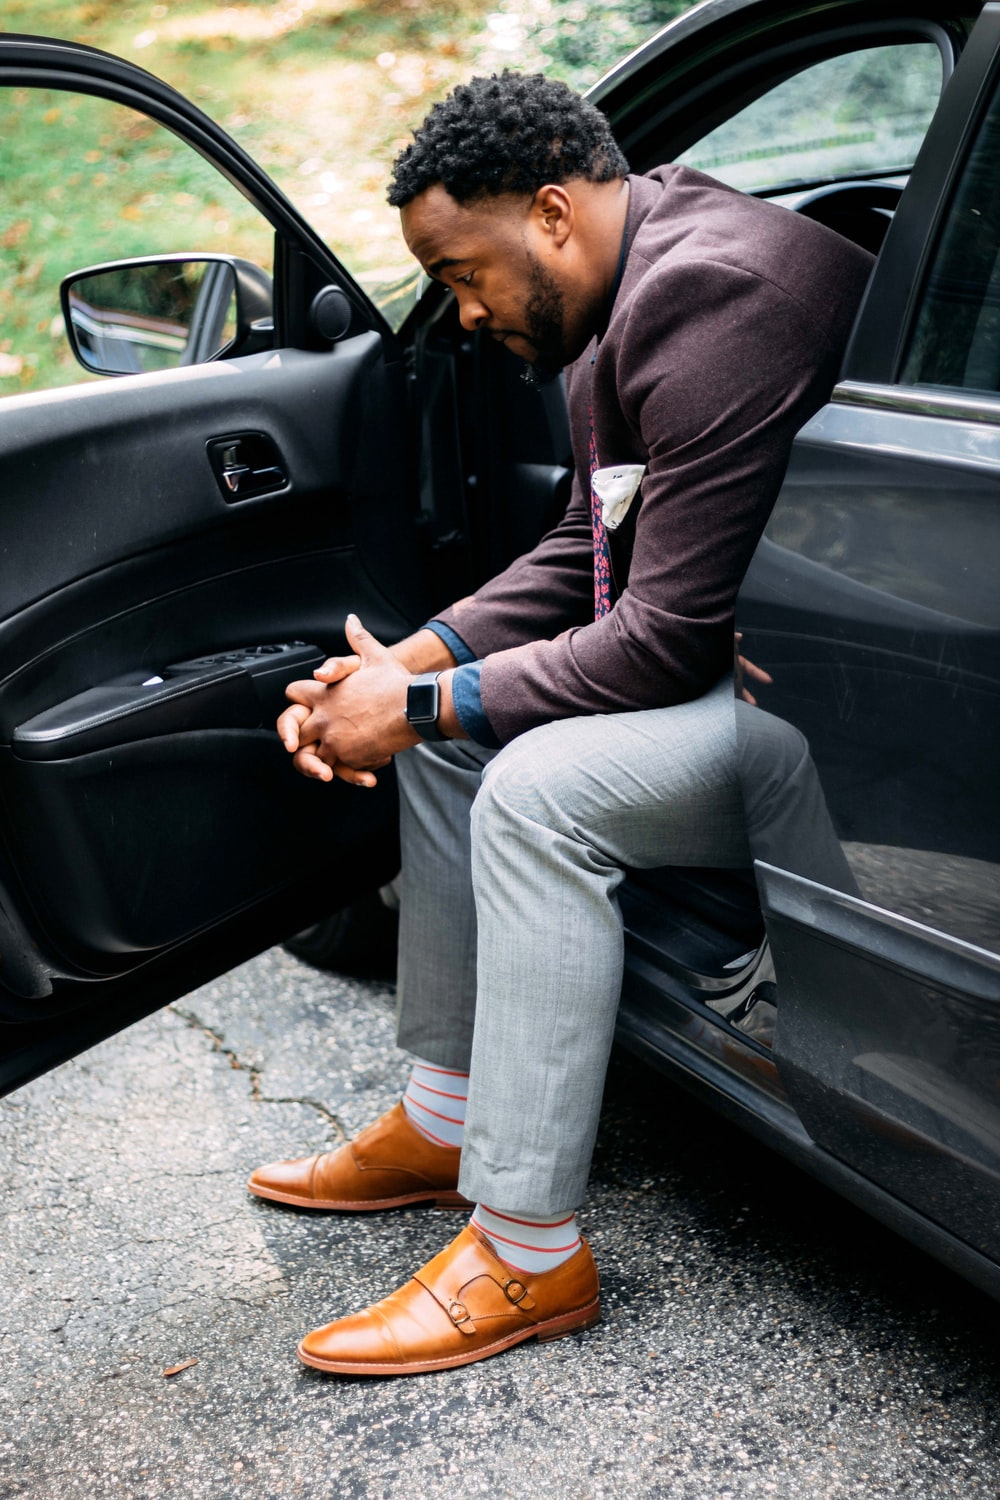 Man alone sitting outside his car